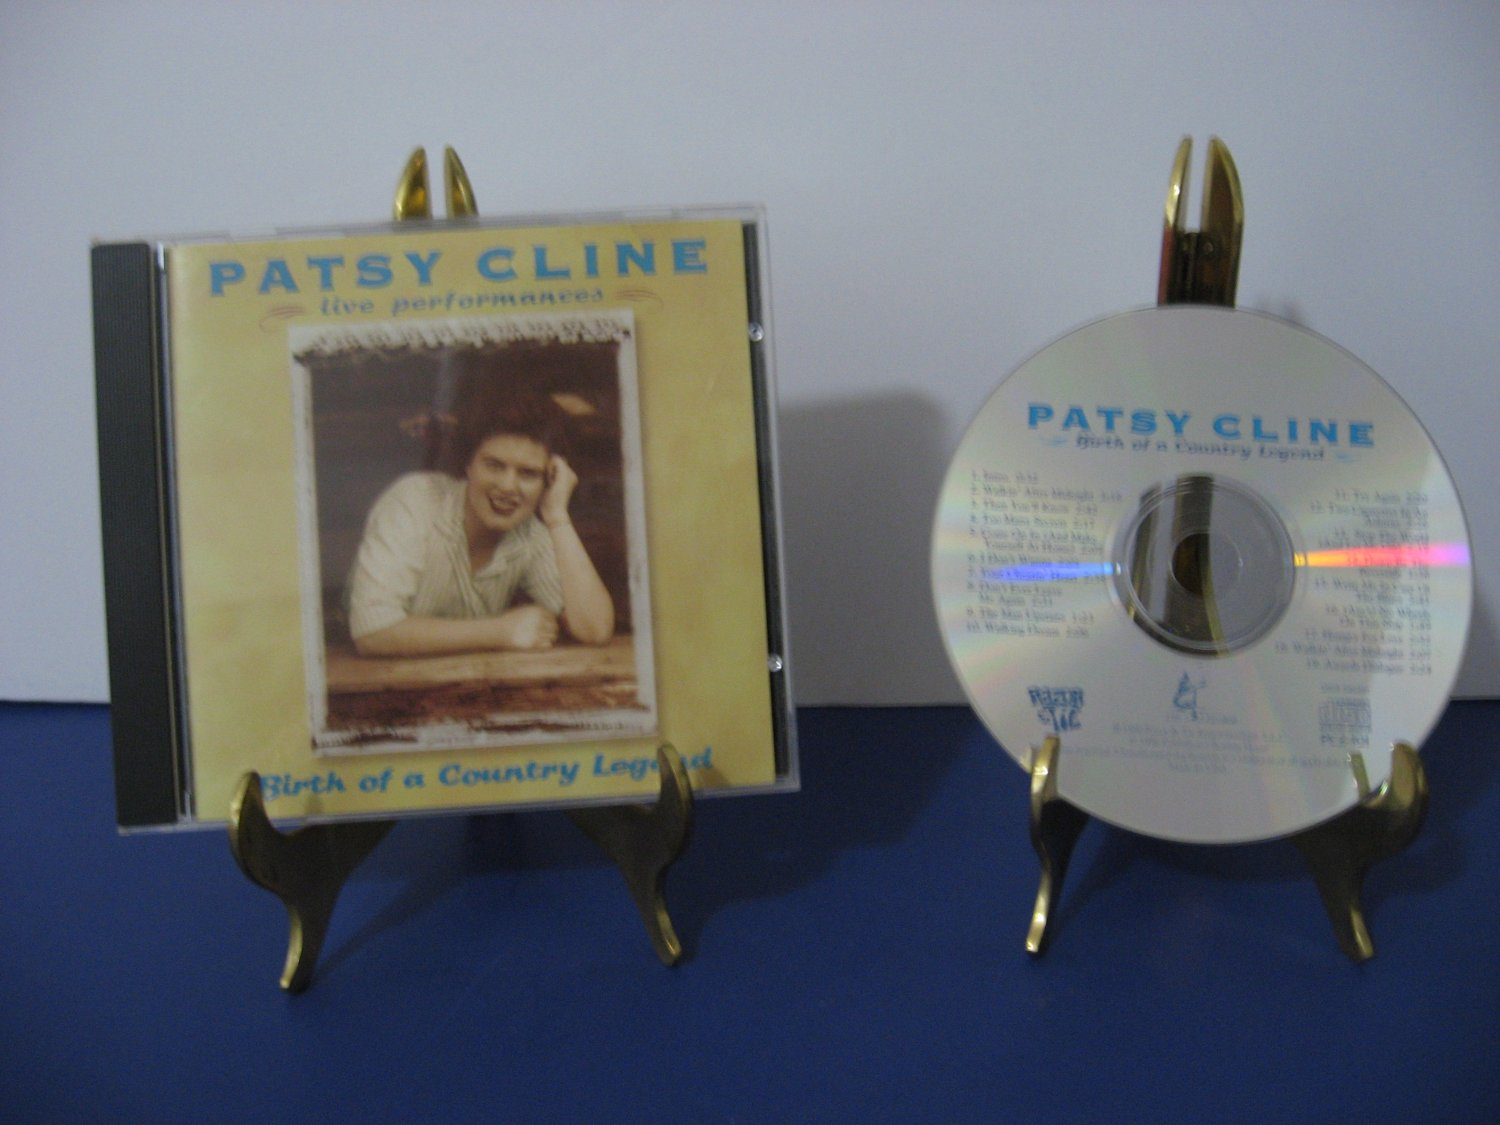 Patsy Cline - Live Performances - Birth Of A Country Legend - Compact Disc